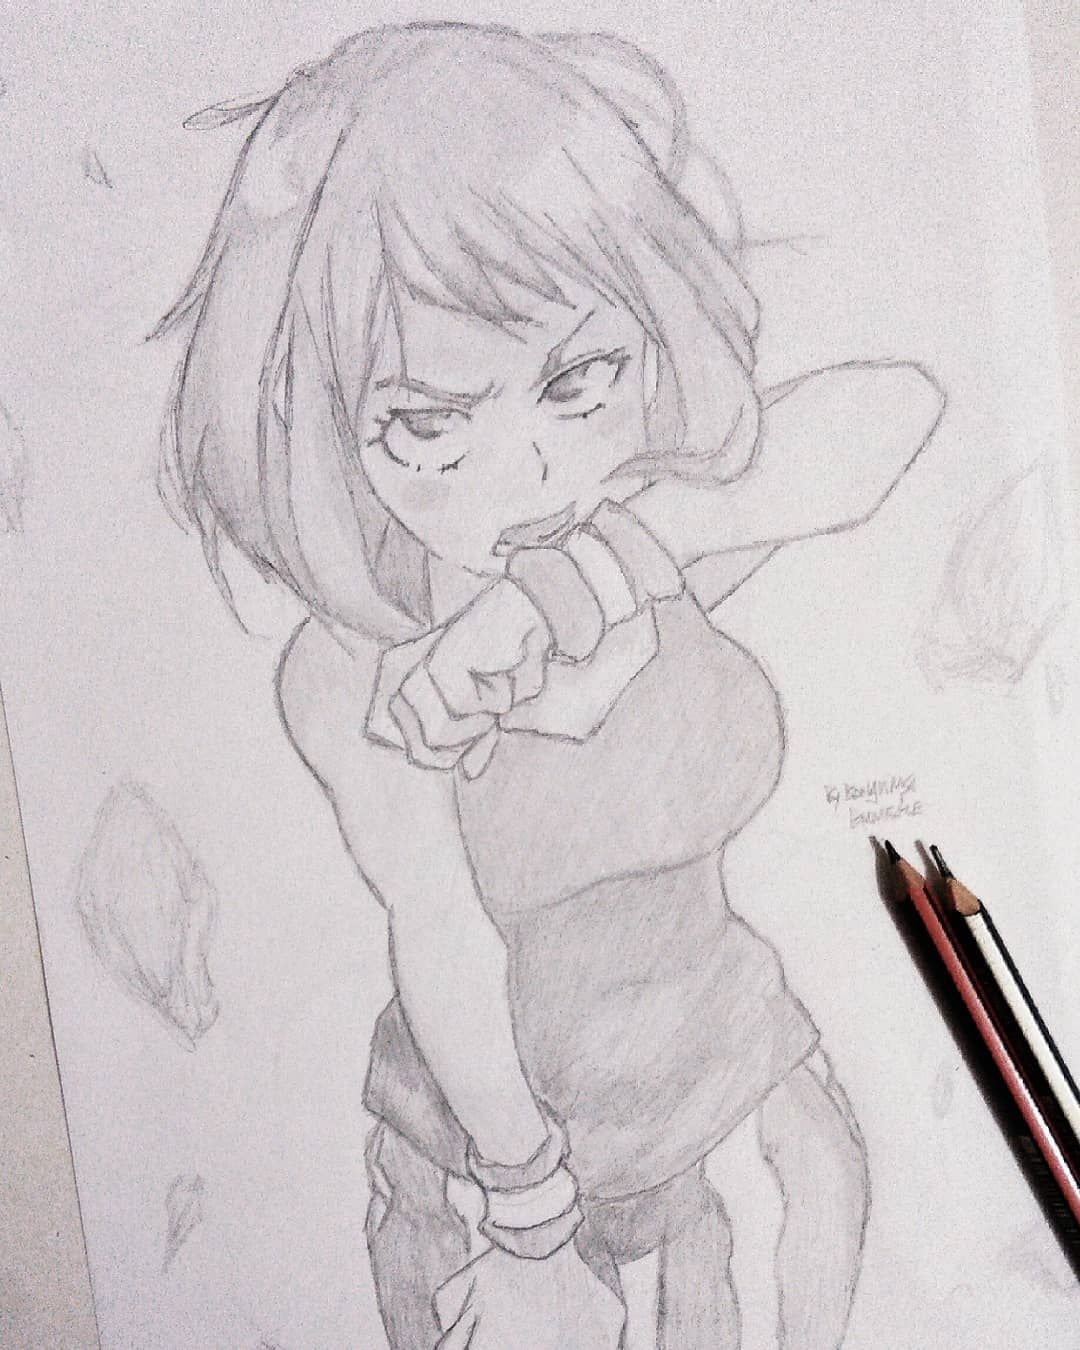 Another Pencil Sketch Of Uraraka From My Hero Academia Or Boku No Hero I M Getting A Little Bit Rusty At Penci Sketches Anime Sketch Anime Drawings Sketches